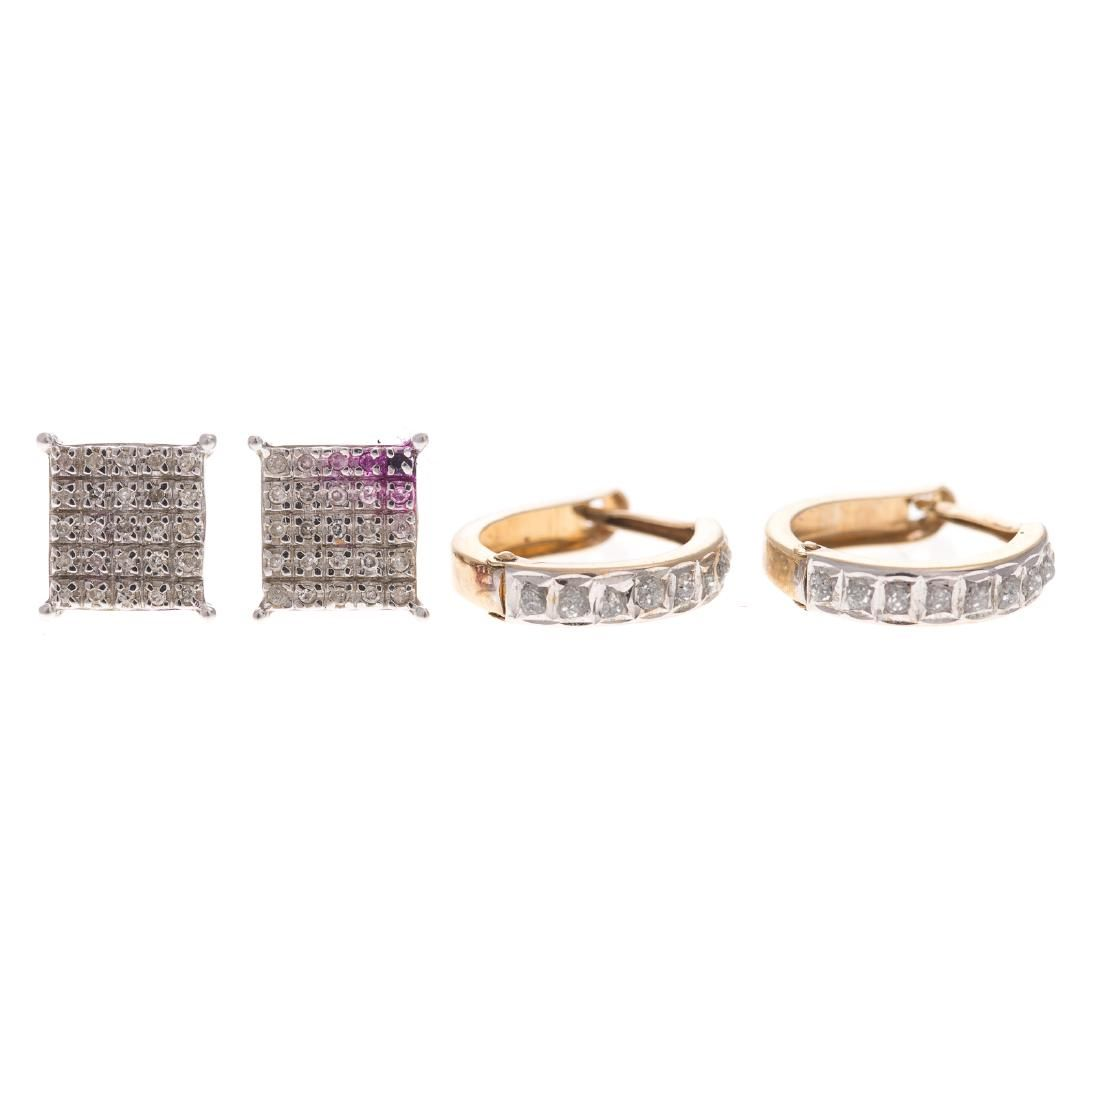 Two Pairs of Lady's Diamond Earrings in Gold